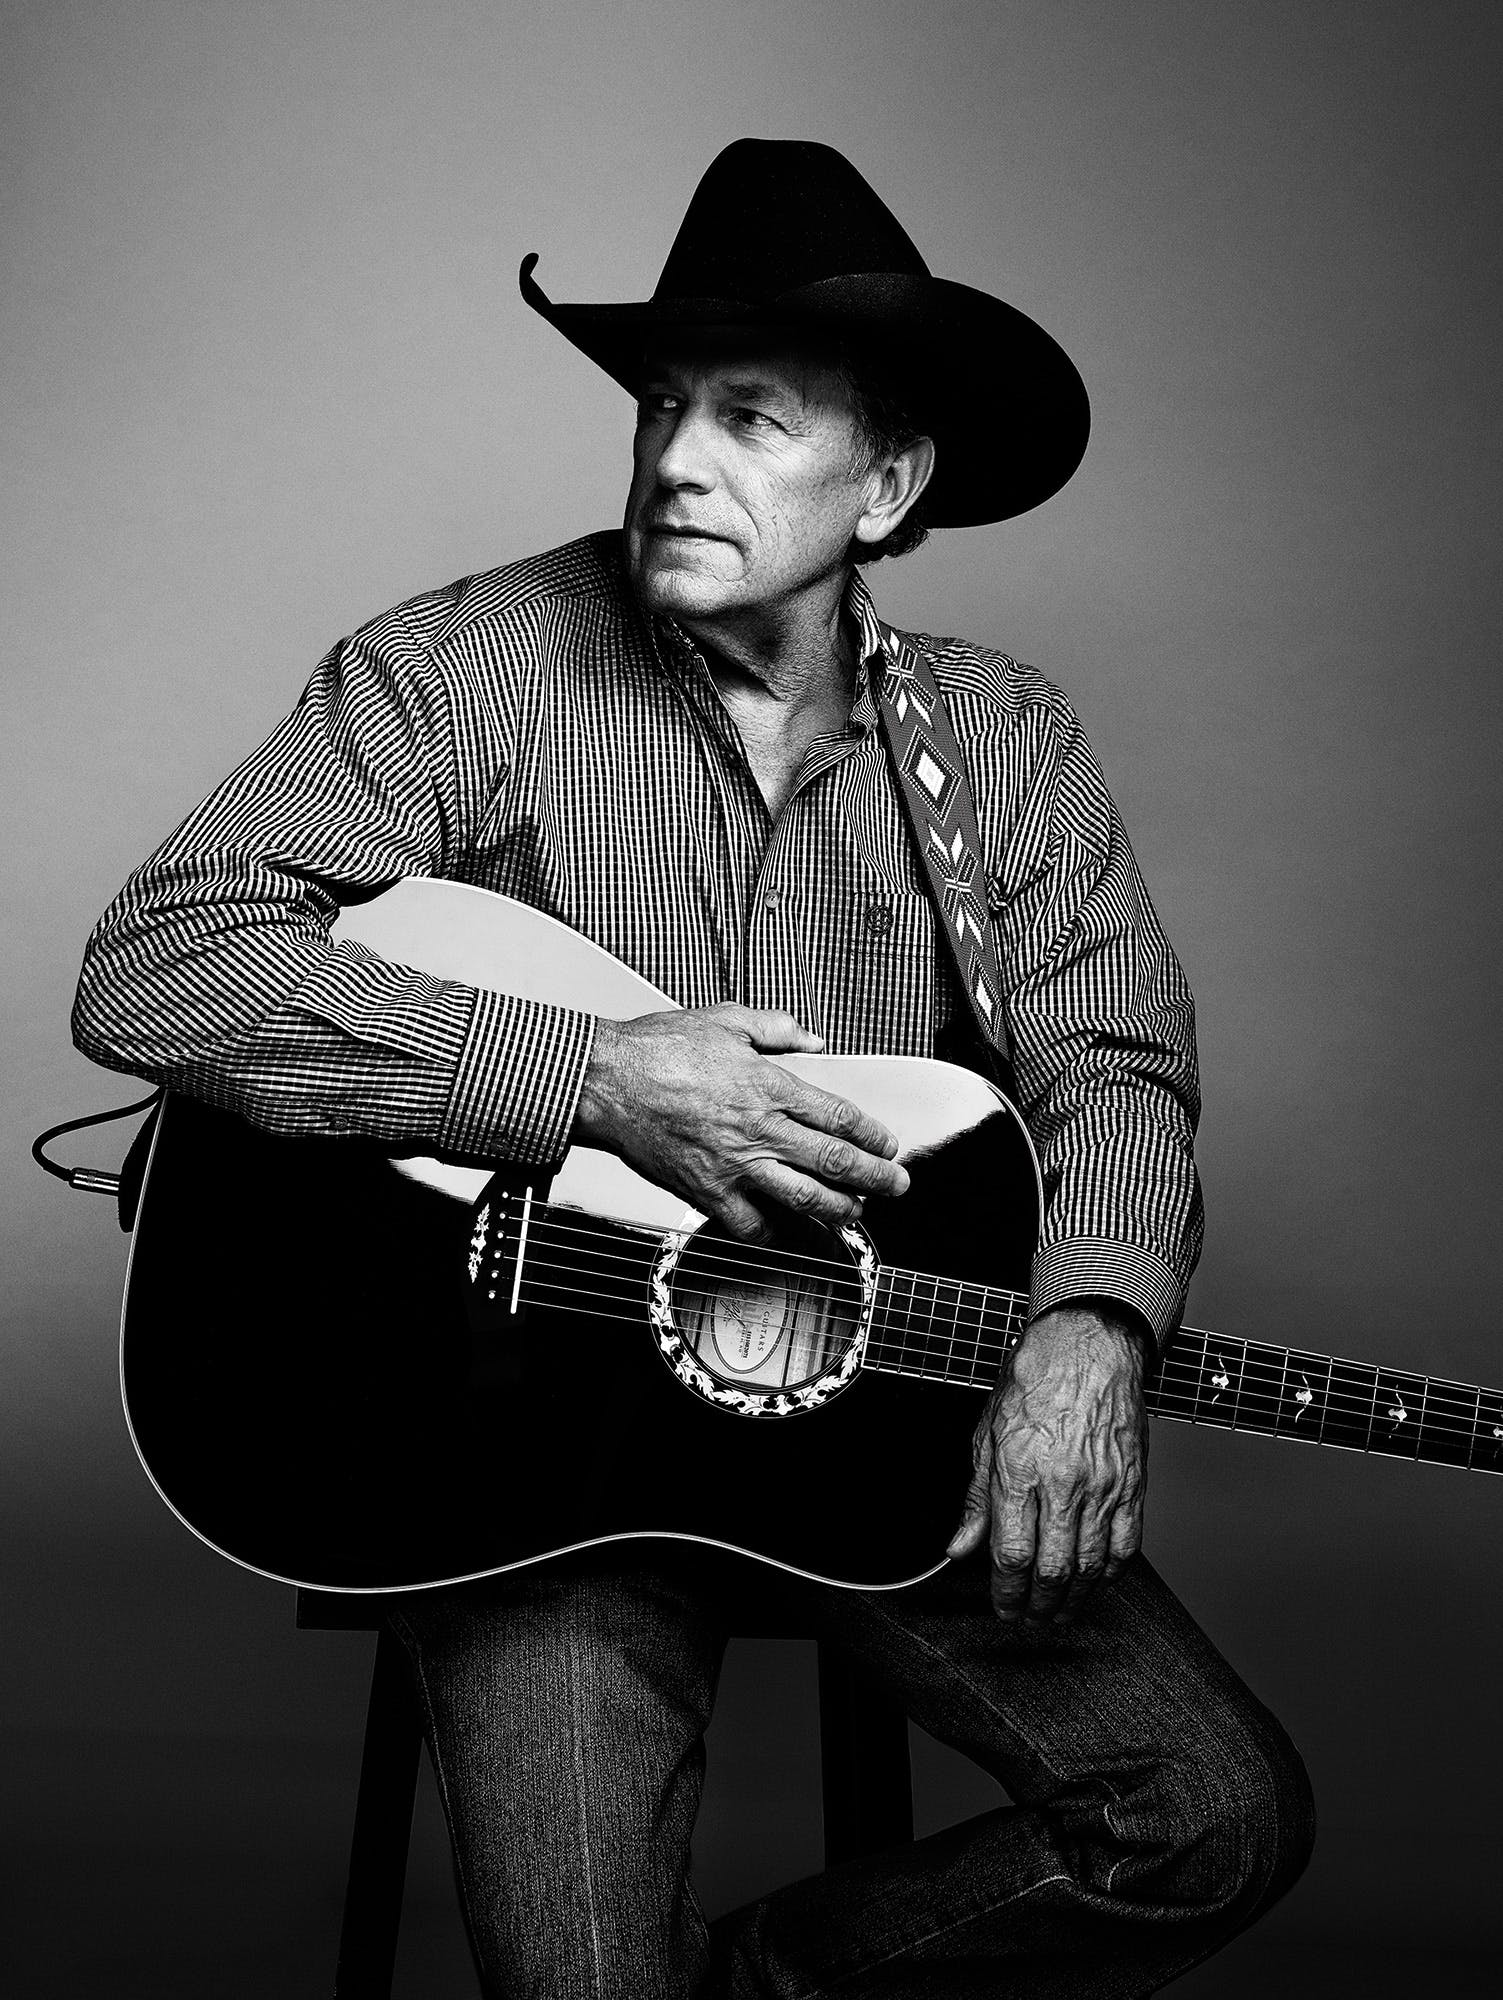 George Strait portrait